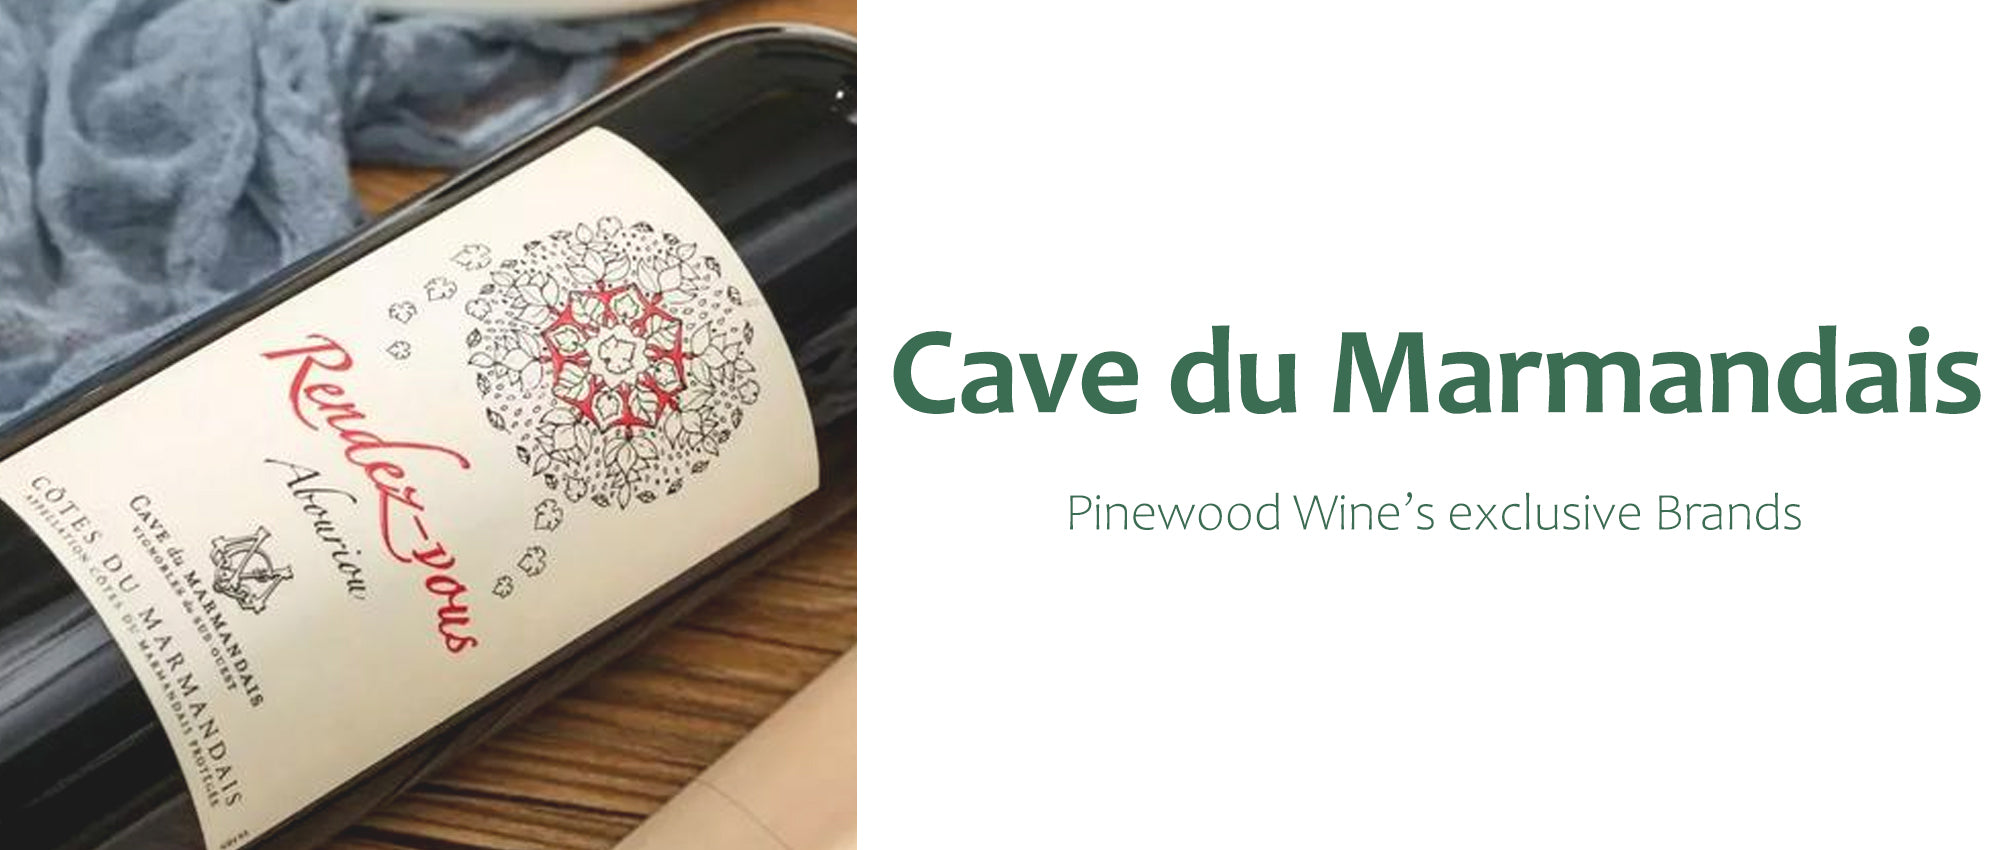 Pinewood Wine: Cave du Marmandais